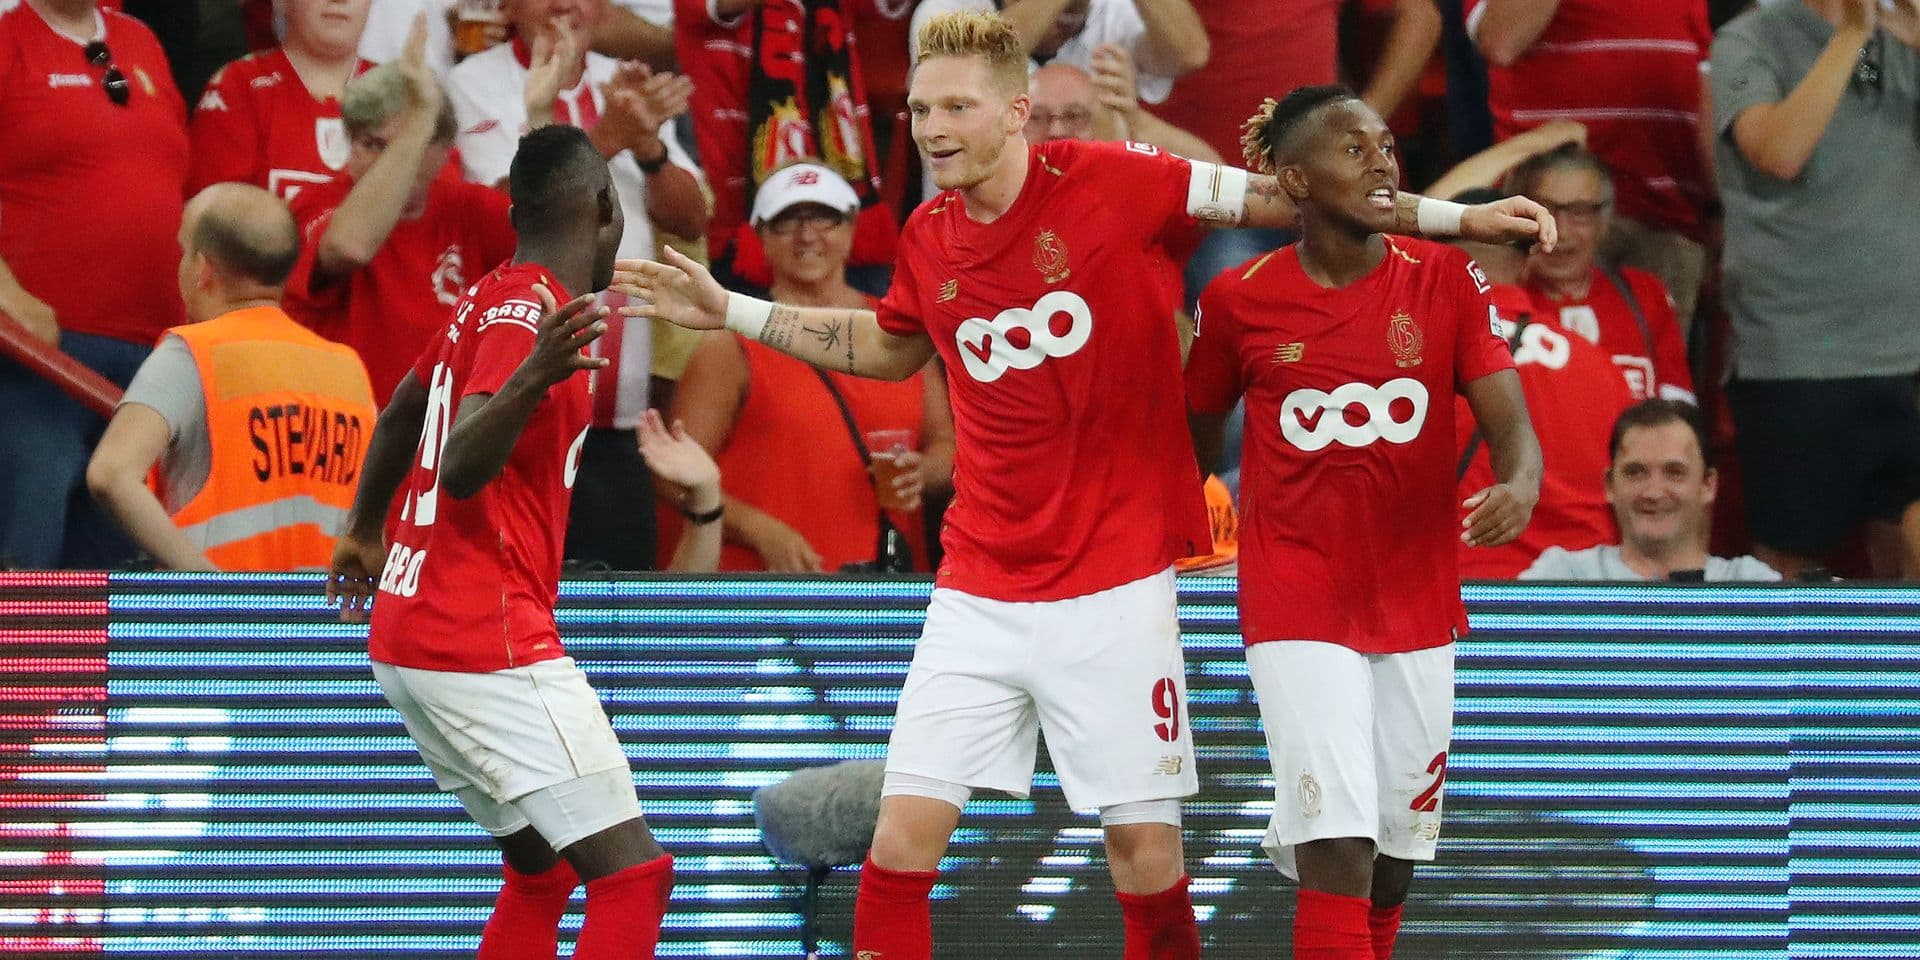 Standard's Moussa Djenepo and Standard's Renaud Emond celebrate after scoring during the Jupiler Pro League match between Standard de Liege and KAA Gent, in Liege, Friday 27 July 2018, on the first day of the Jupiler Pro League, the Belgian soccer championship season 2018-2019. BELGA PHOTO VIRGINIE LEFOUR